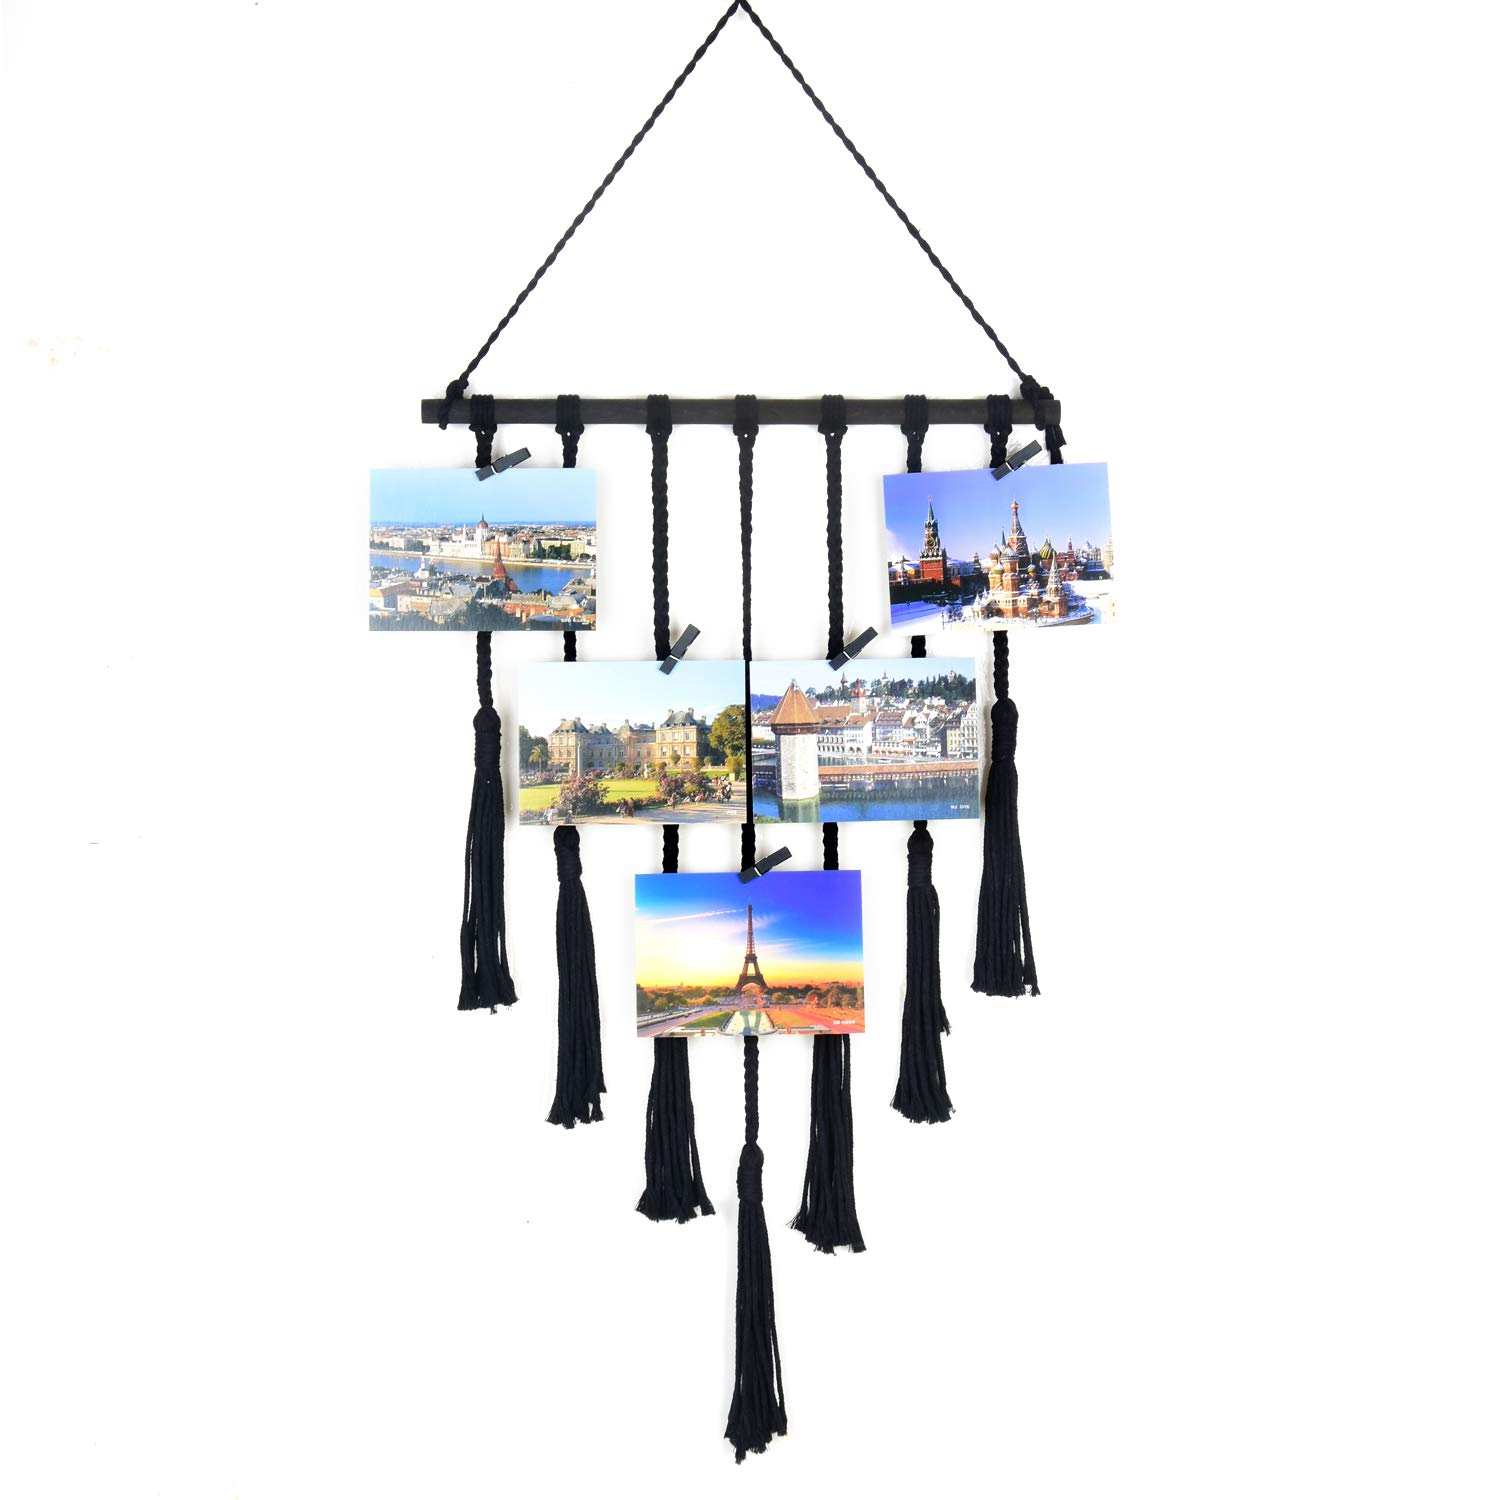 Seamersey Photo Hanging Display Frames Macrame Wall Hanging Pictures Organizer Home and Wall Decor with 25 Wood Clips(Black)